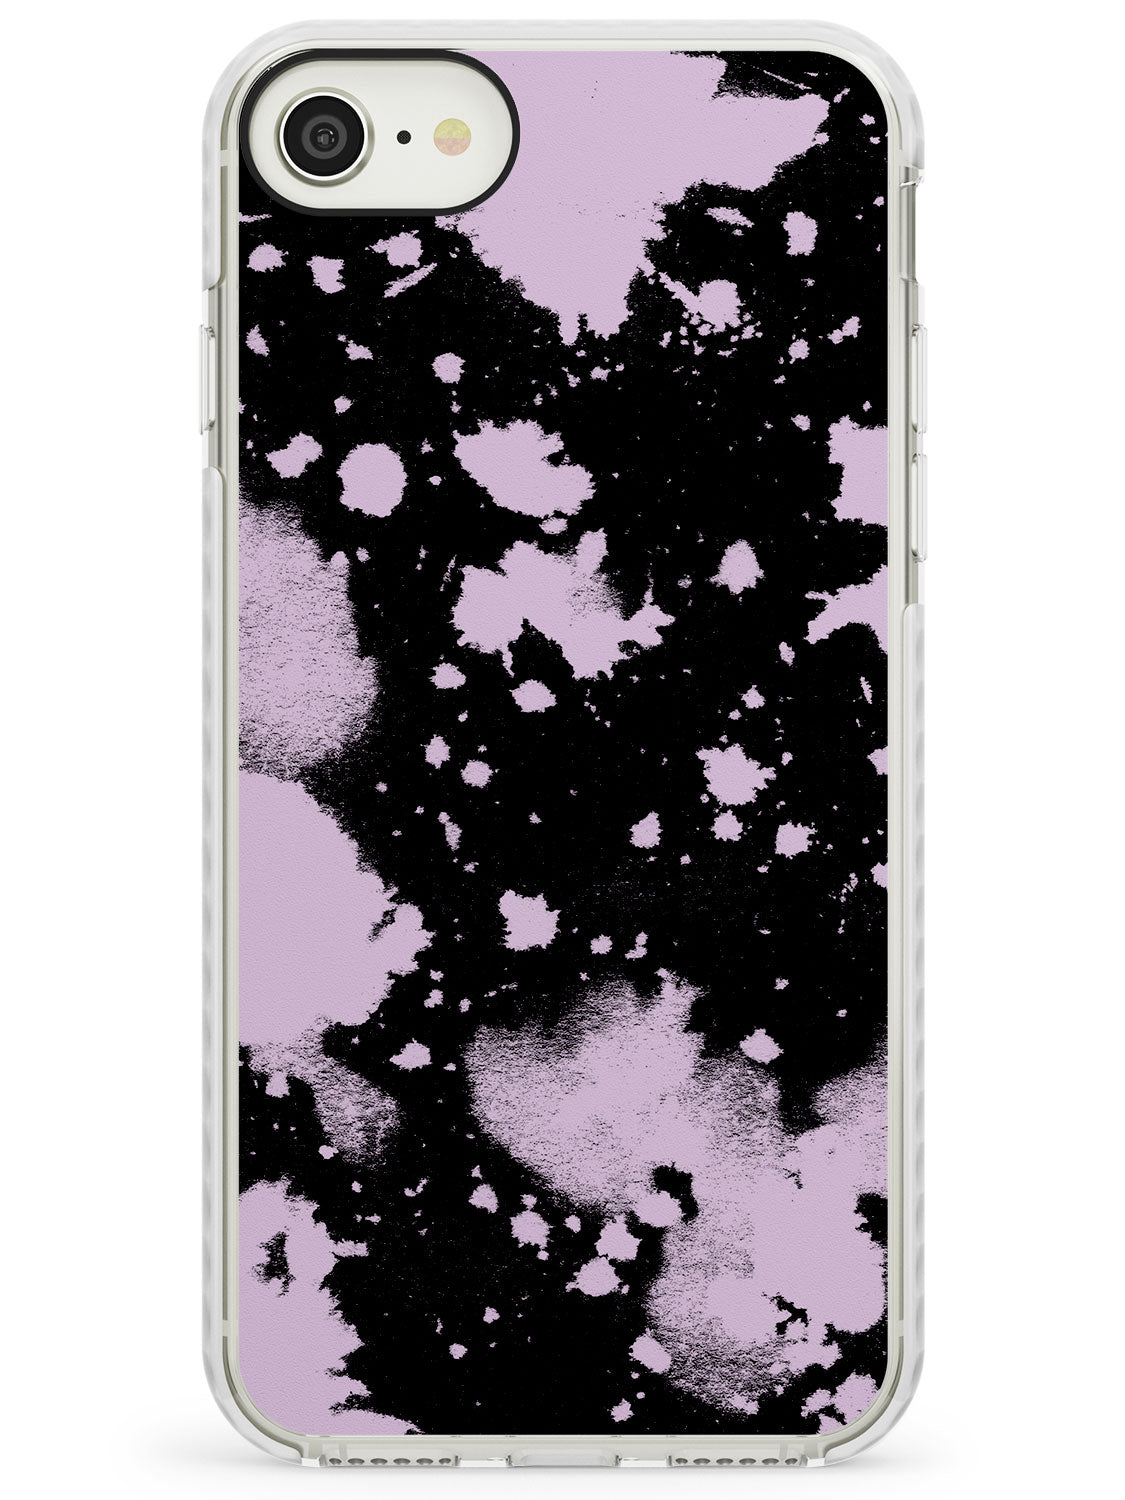 Pink & Black Acid Wash Tie-Dye iPhone Case by Case Warehouse ®